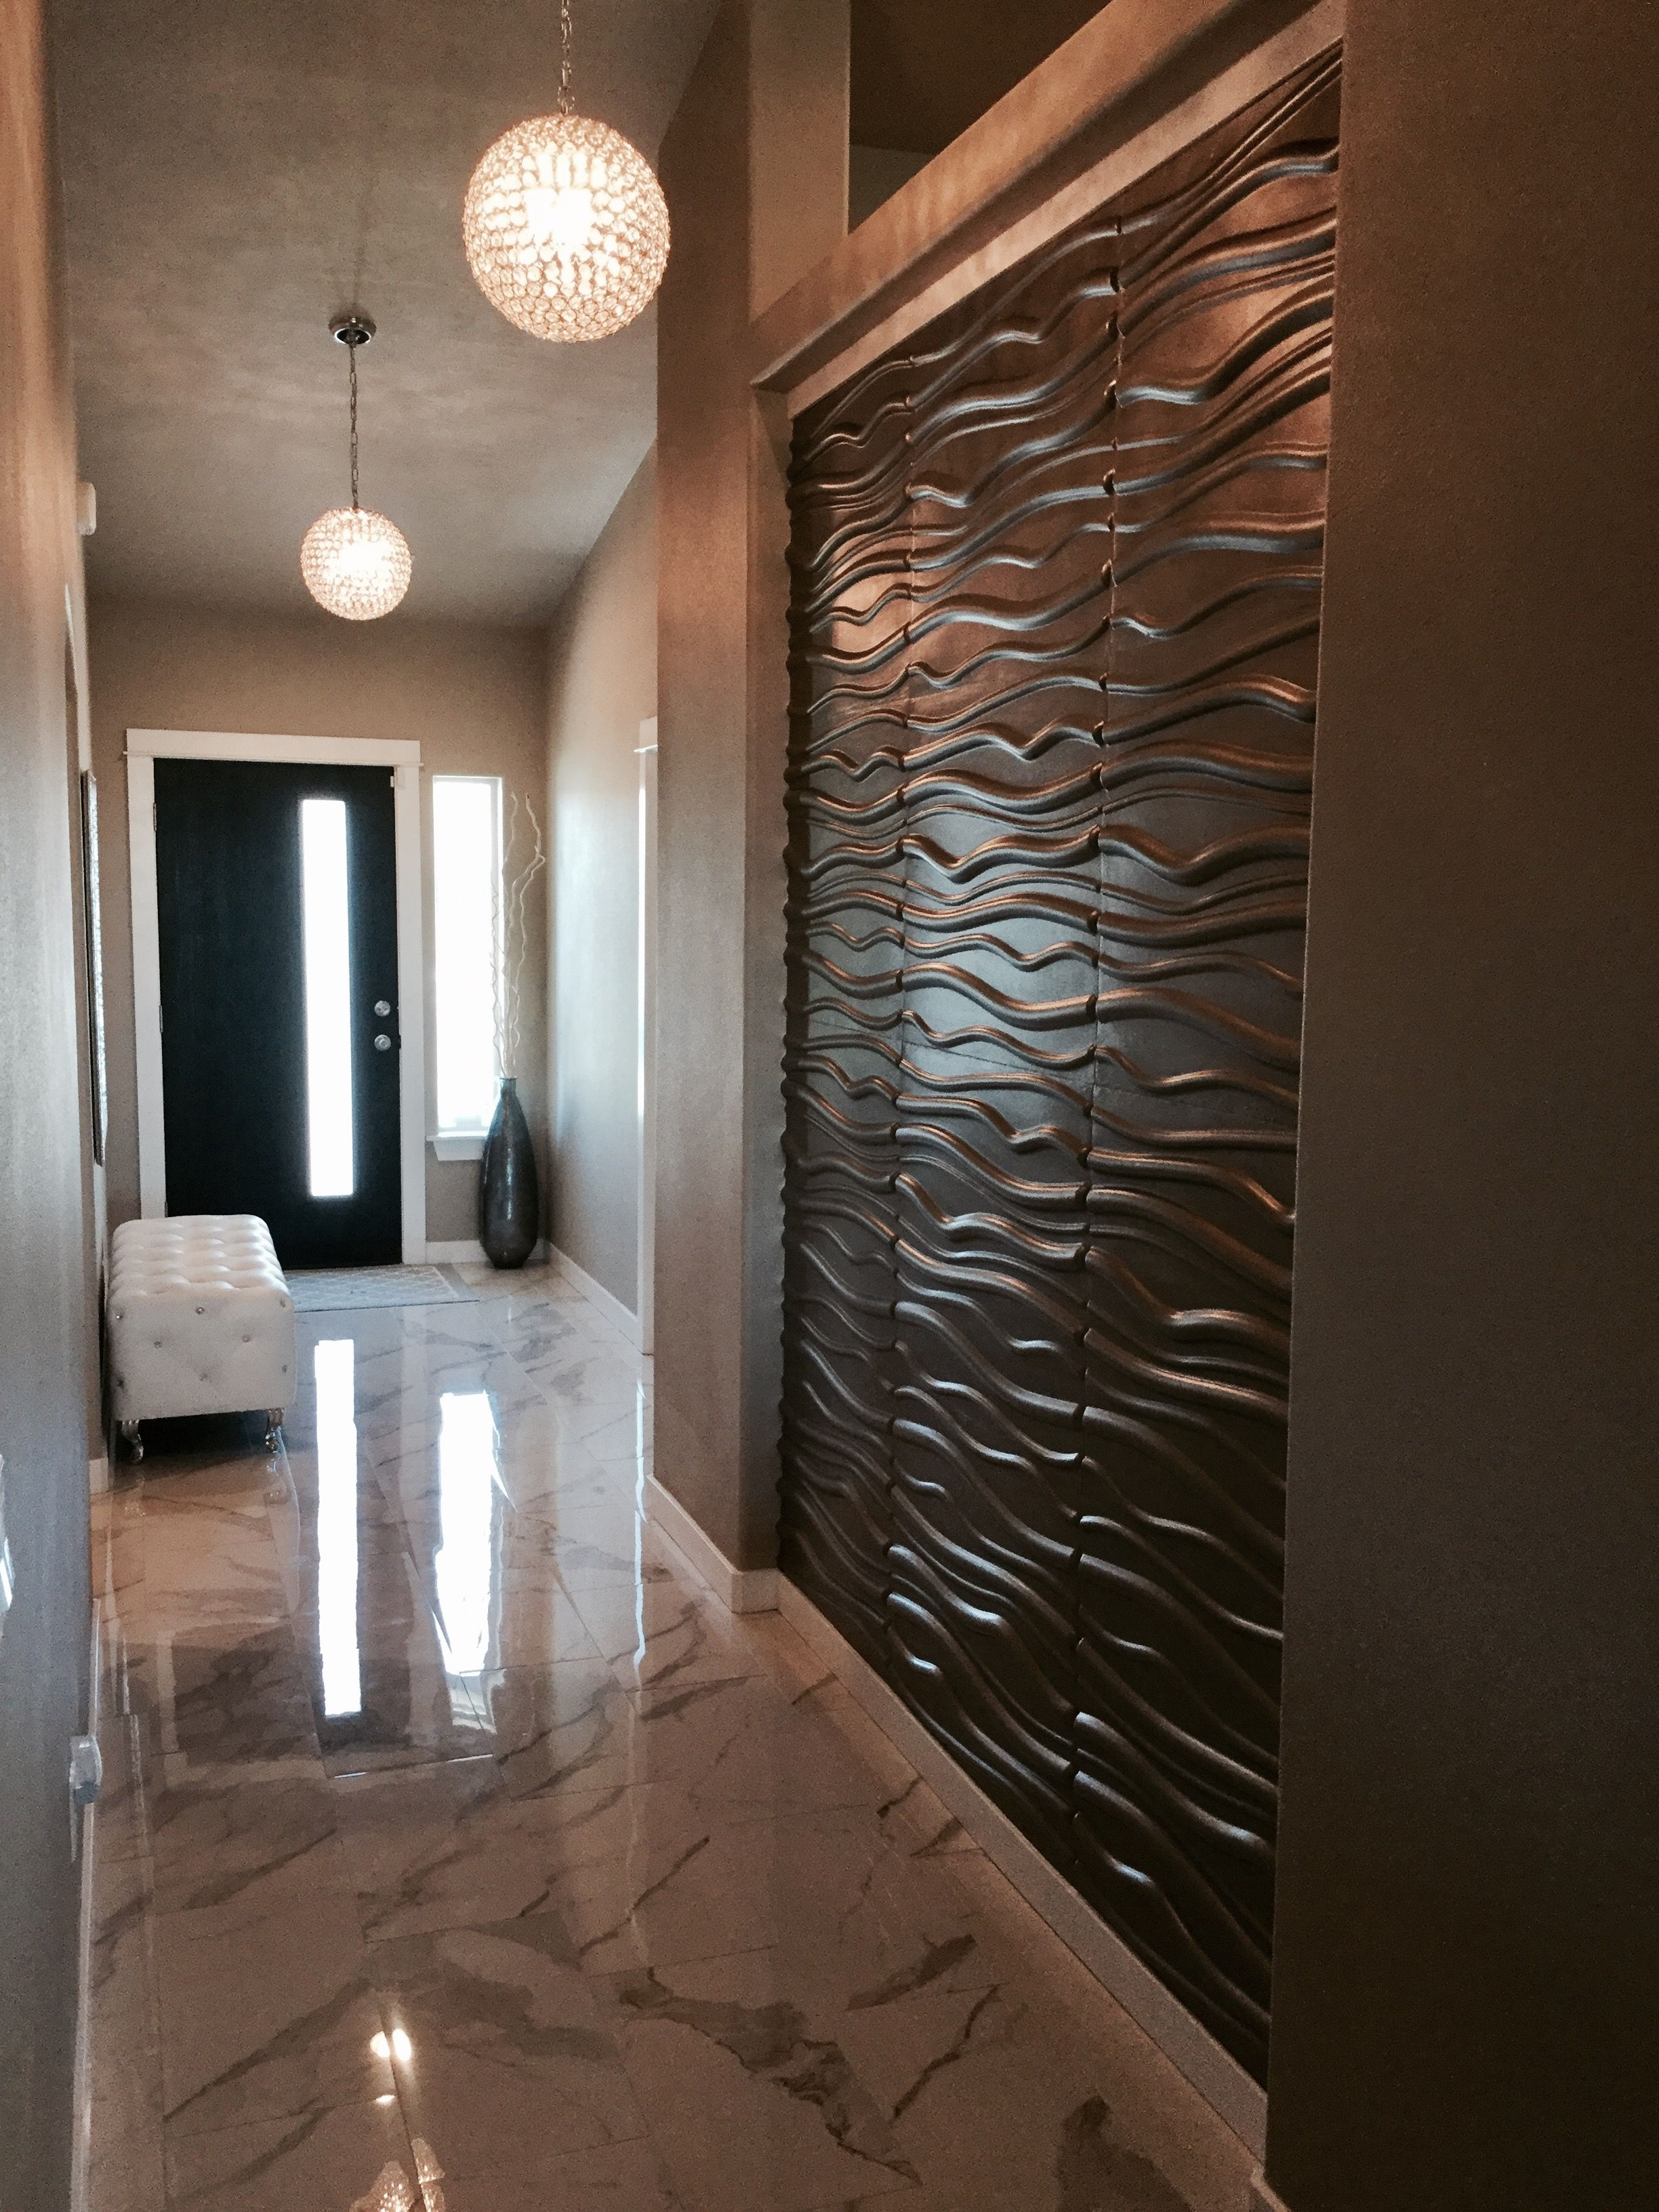 3D Wall Panels - Bamboo Pulp - #72 | Space character, Ceiling ...